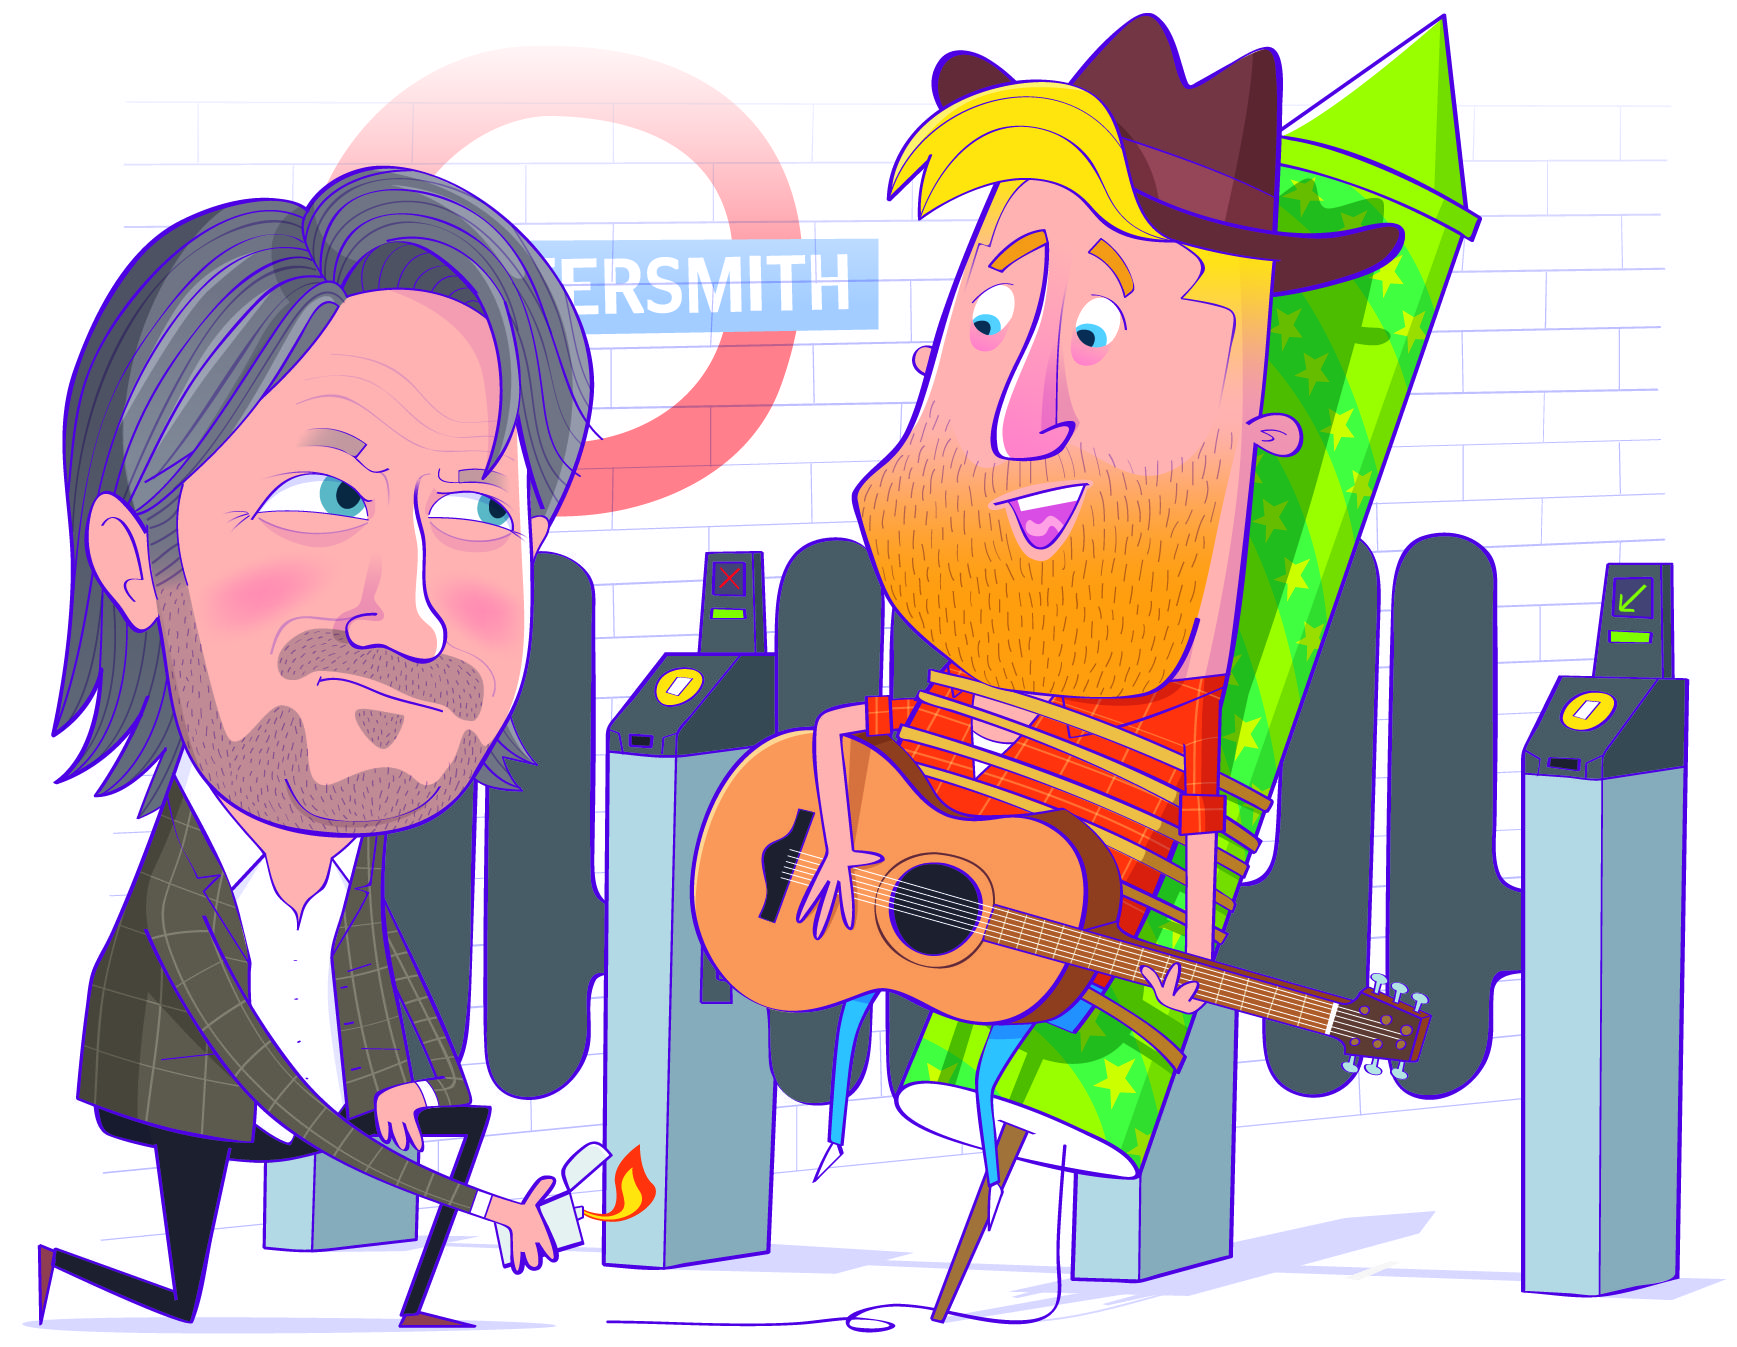 Richard Herring: Honestly, no thank you for the music